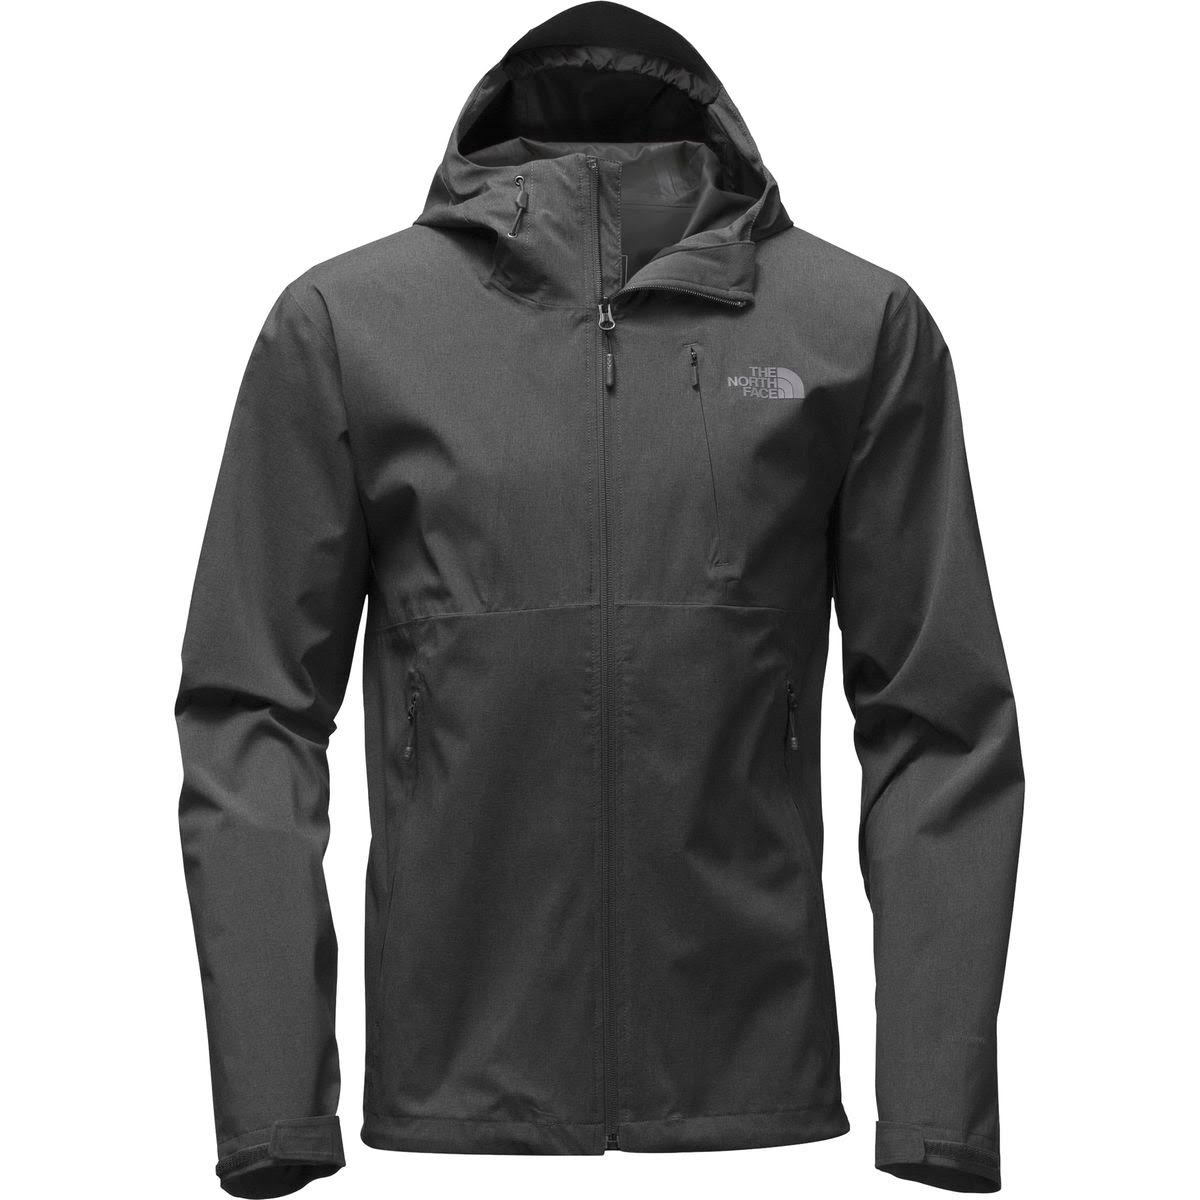 Face Oscuro dyz Chaqueta Heather North Tnf Nf0a2tck Xl De Gris Thermoball Triclima q6qwv4IO